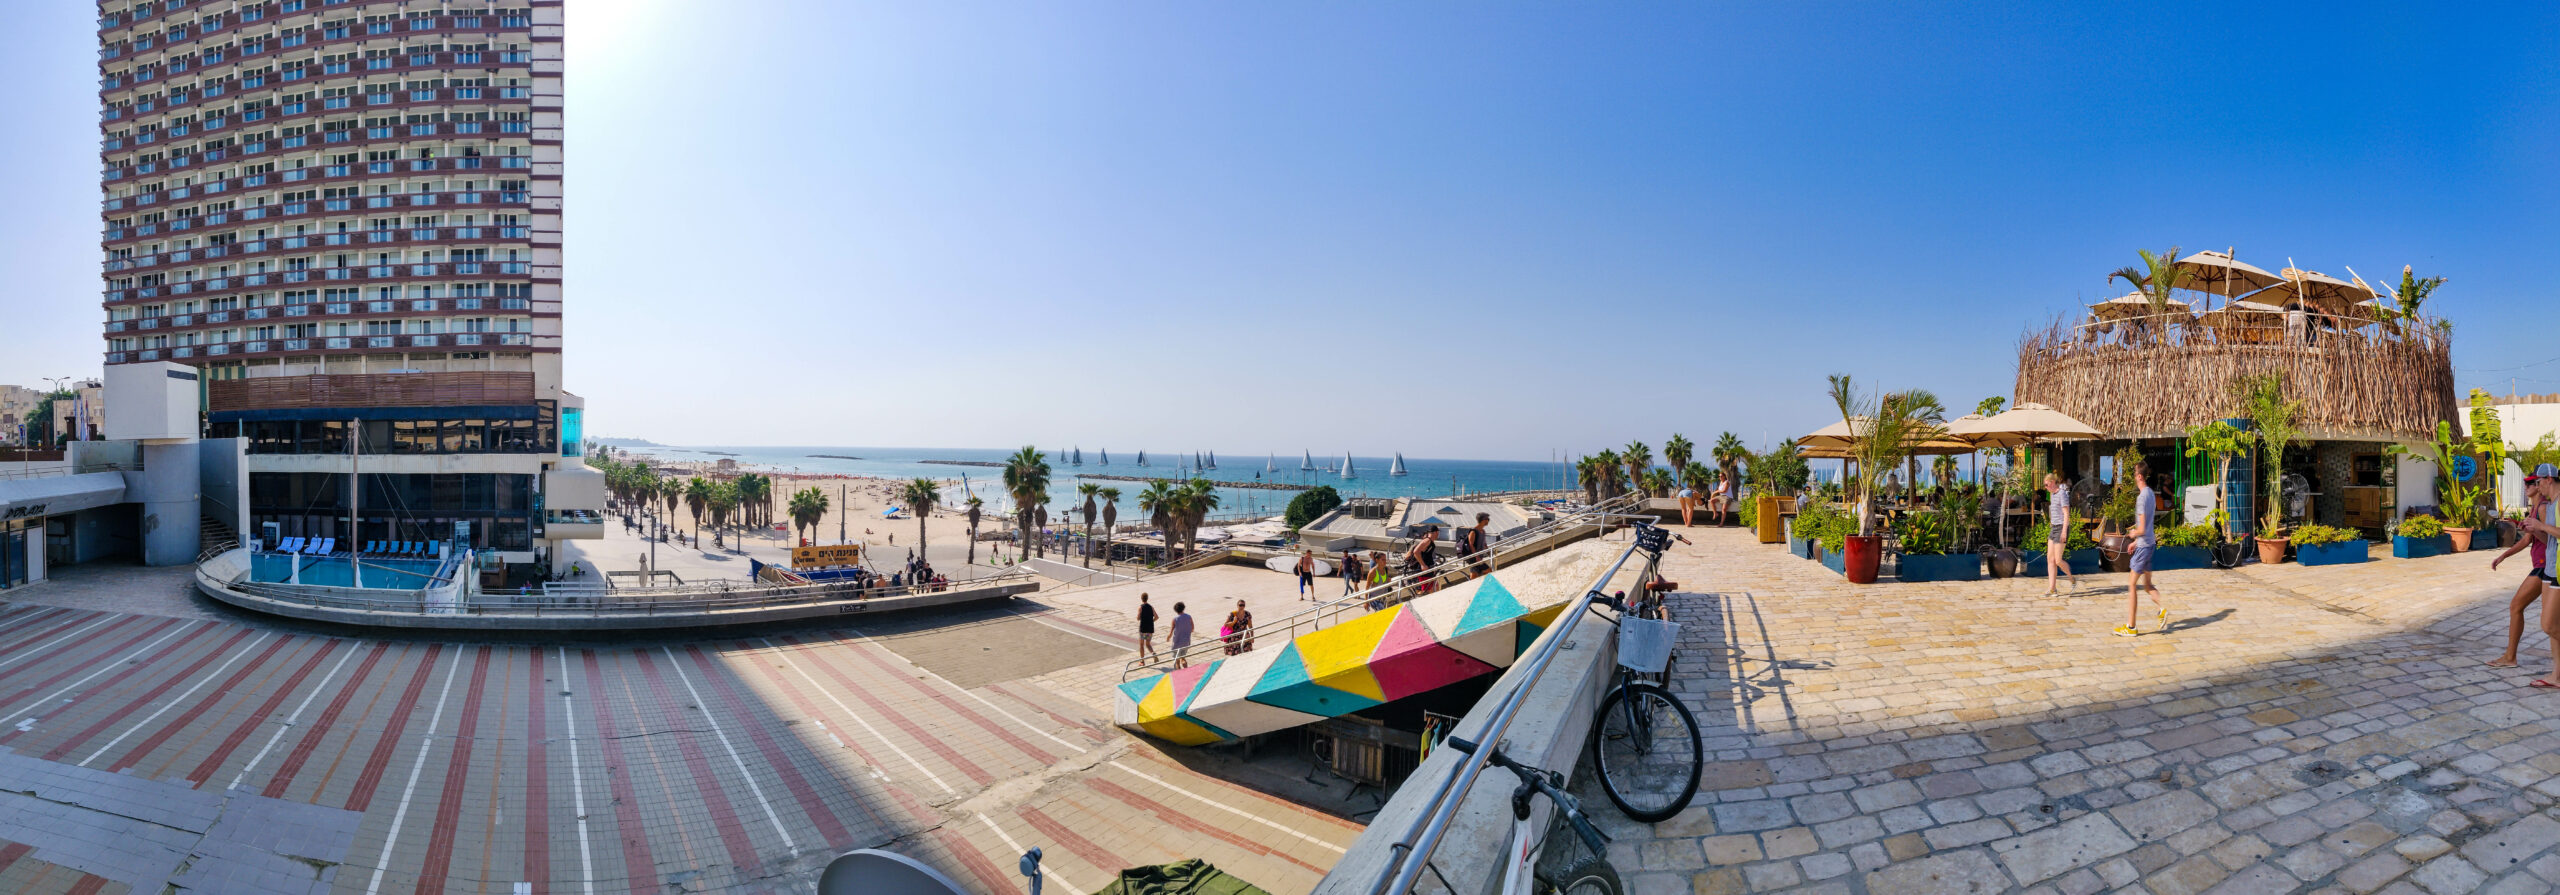 7 Things to do in and outside of Tel Aviv